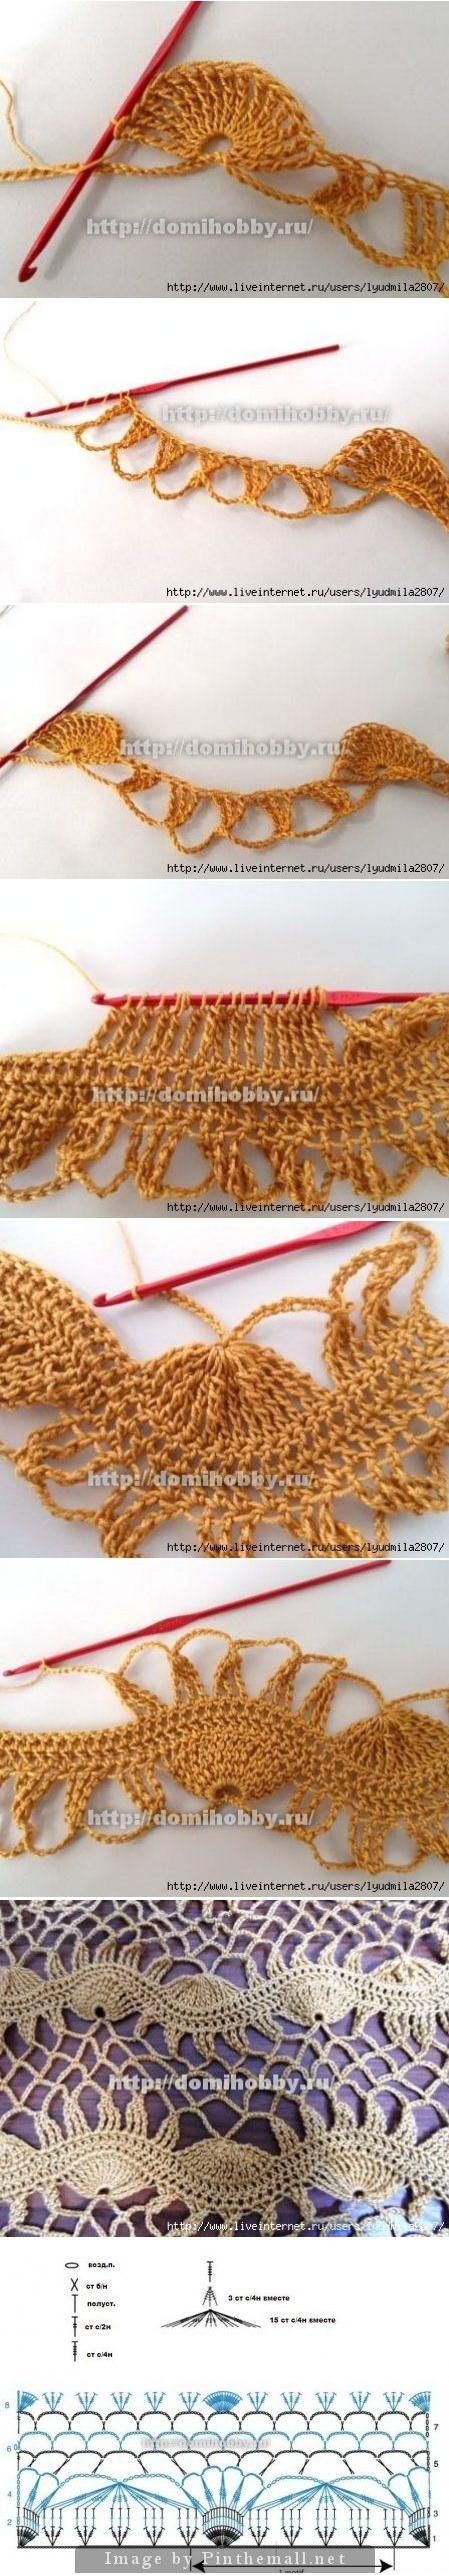 Awesome crochet technique looks like broomstick lace! falso crochê de grampo ༺✿ƬⱤღ https://www.pinterest.com/teretegui/✿༻